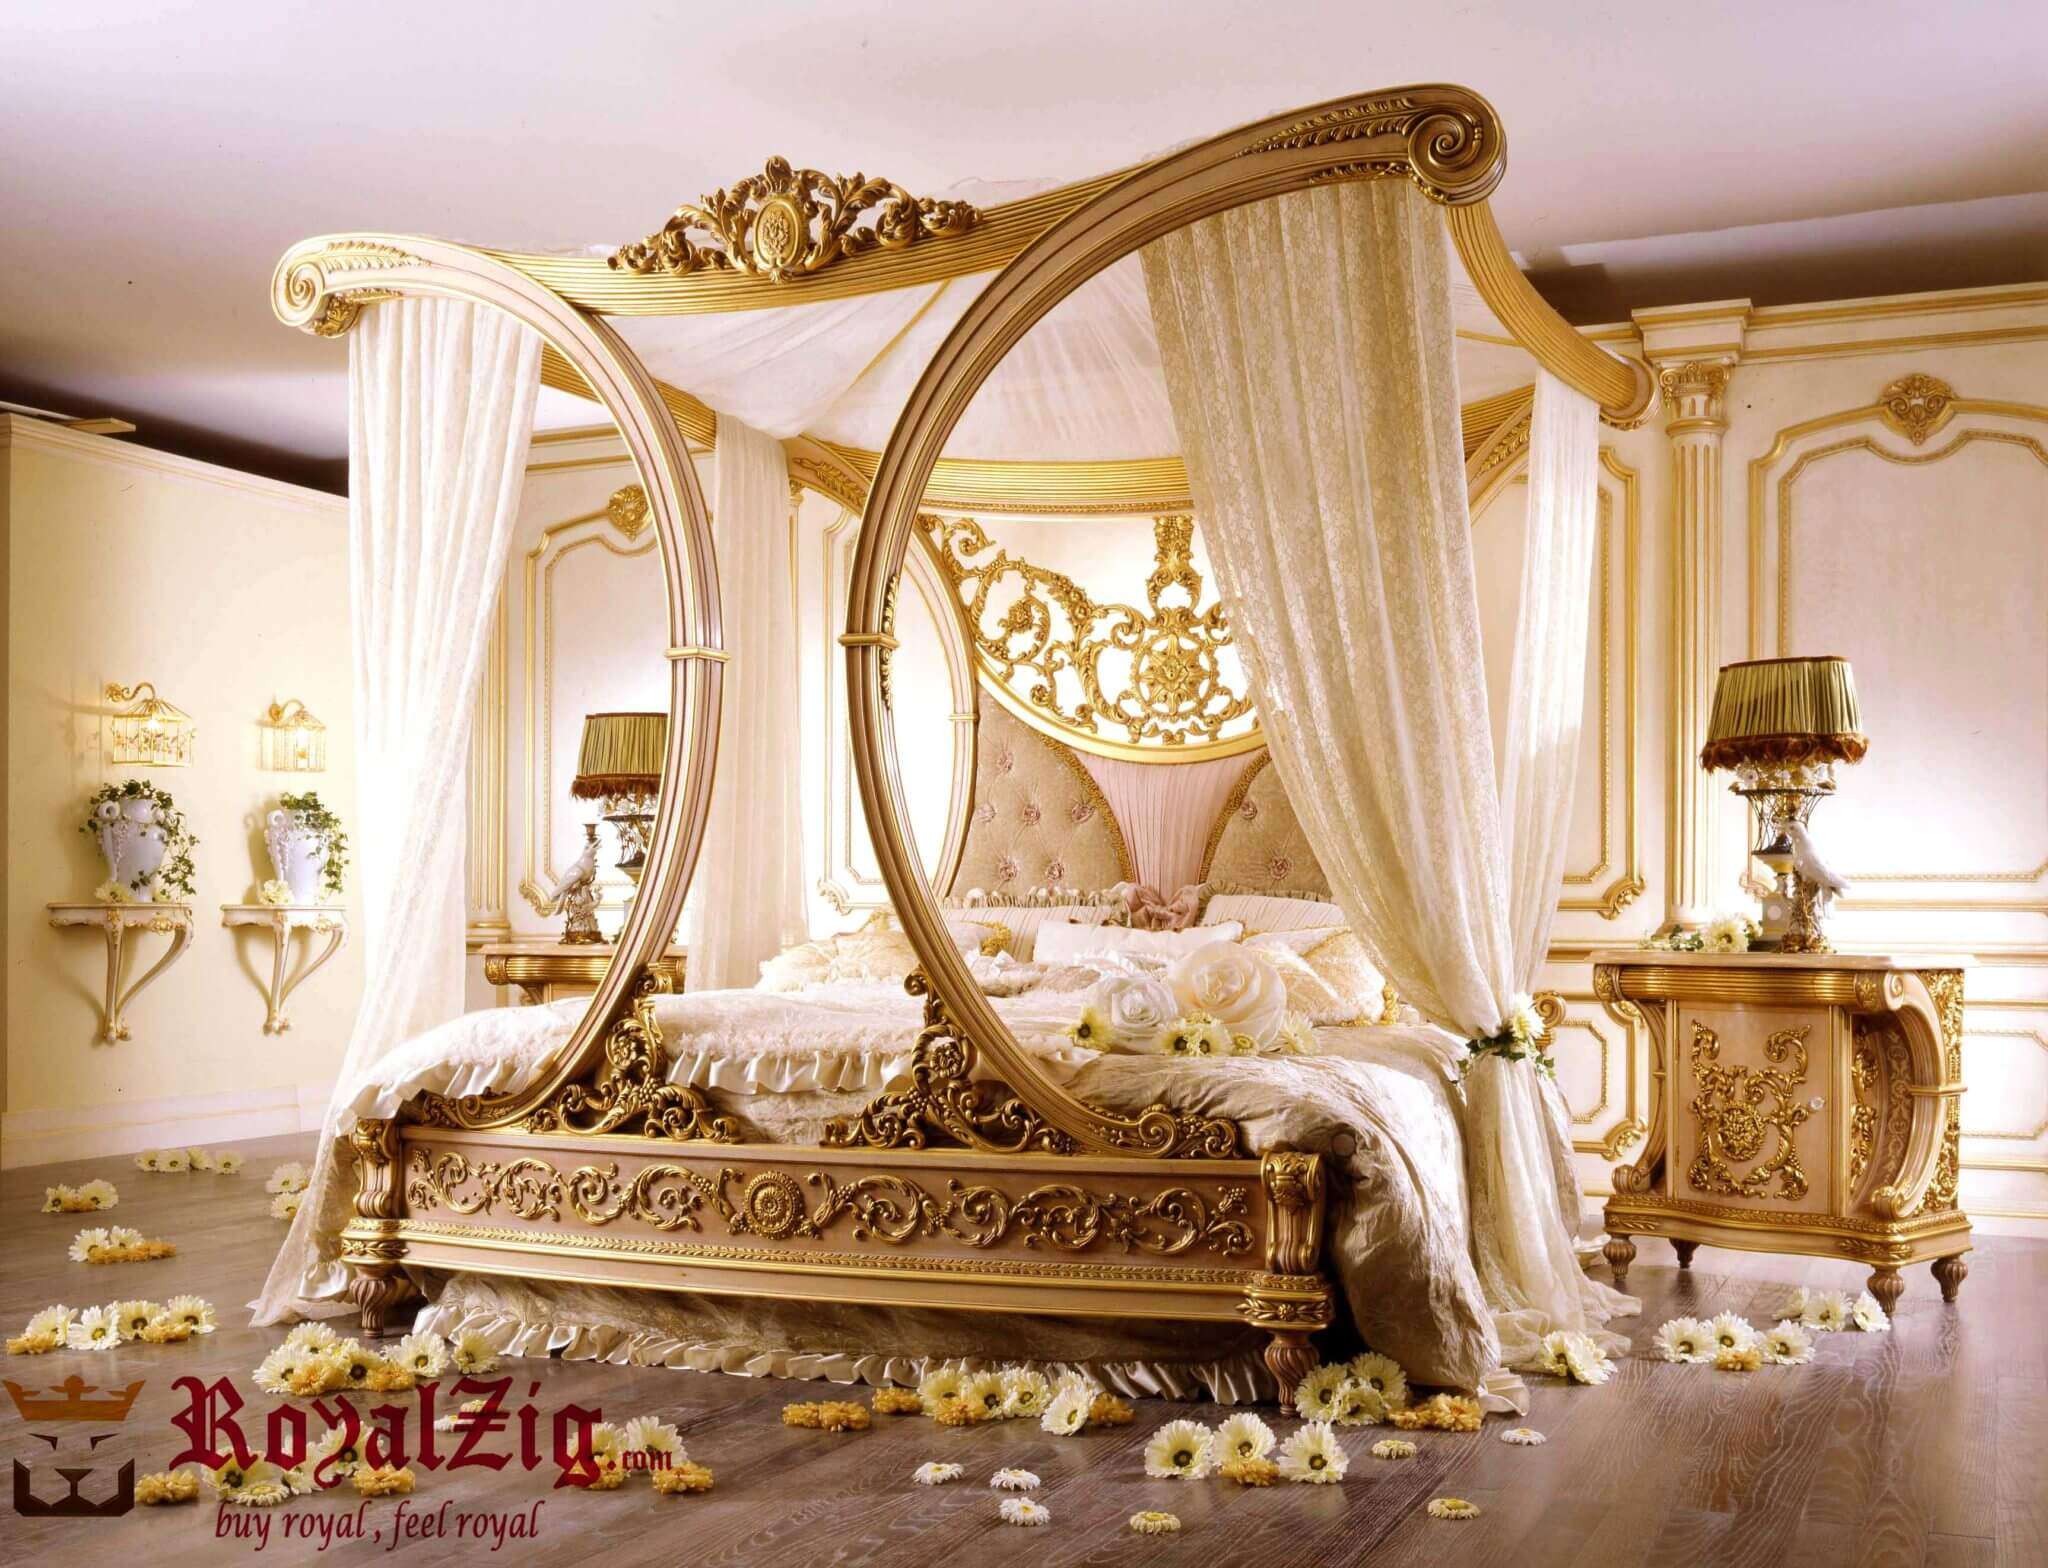 Glamorous Royalzig bed With canopy impressive arched framework Online in India